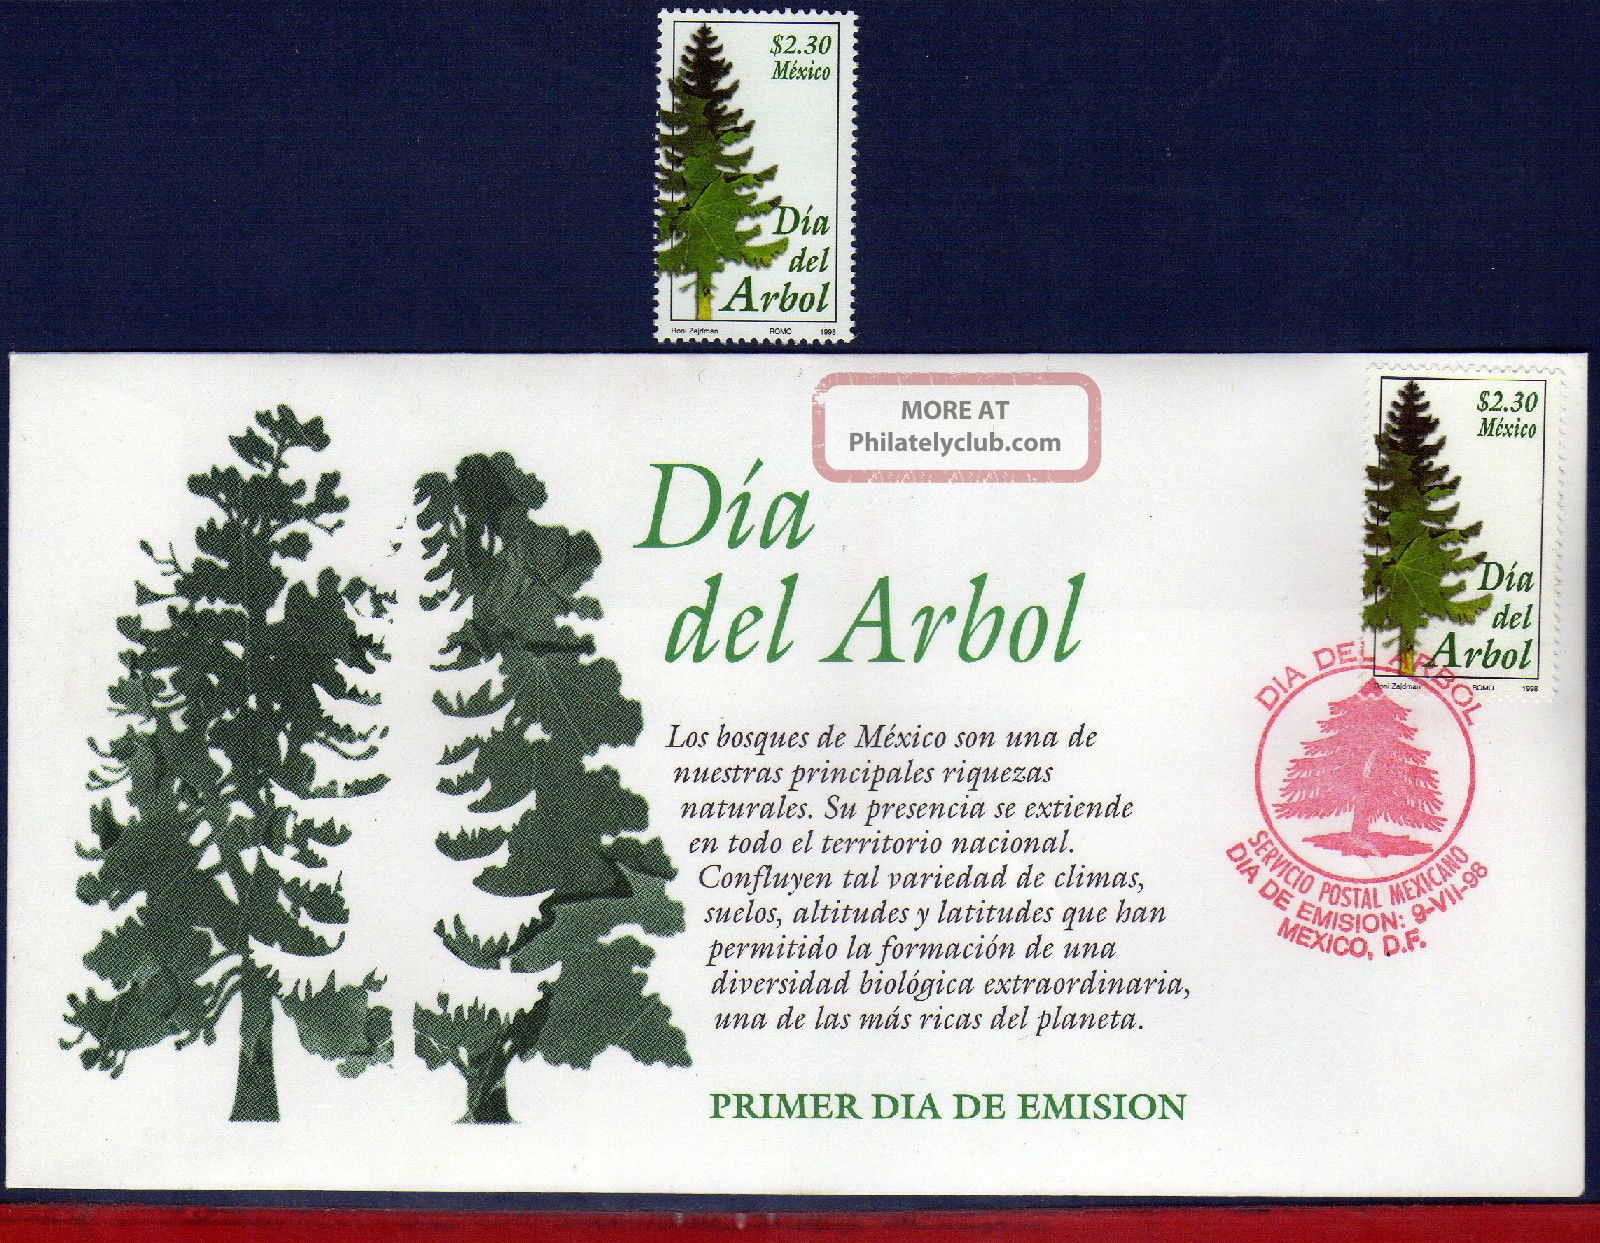 2083fd Mexico 1998 - Arbor Day,  Tree,  Flowers & Plants,  Mi 2703 Latin America photo